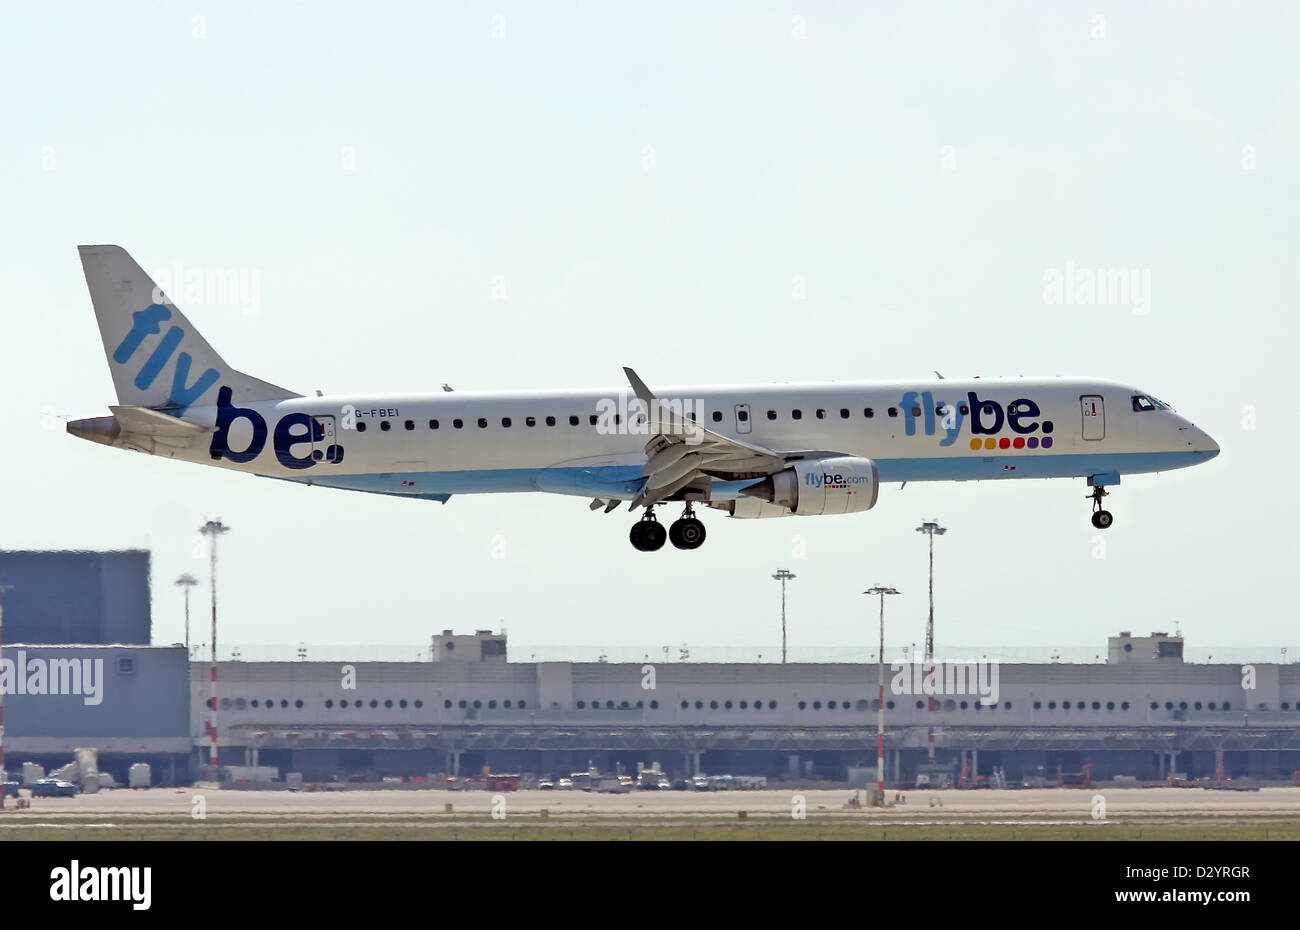 Flybe, Embraer ERJ-195LR - Stock Image